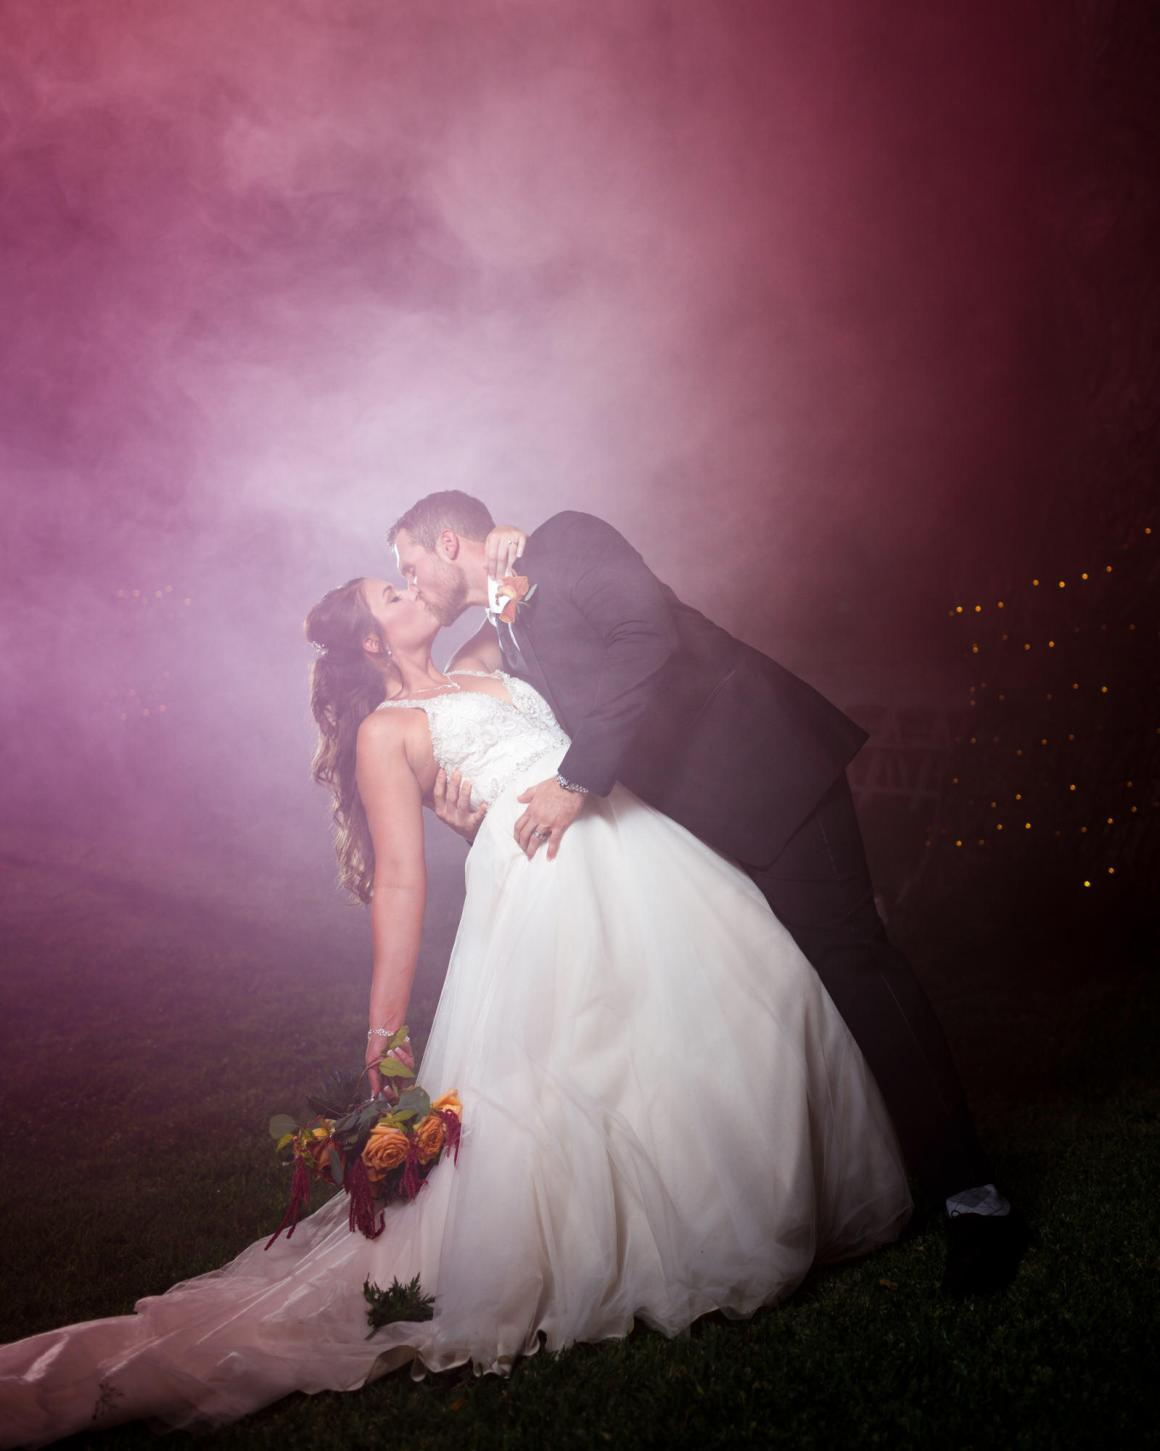 Bride and groom share a kiss on a foggy night at Cathedral Oaks wedding venue in Belton, Tx.